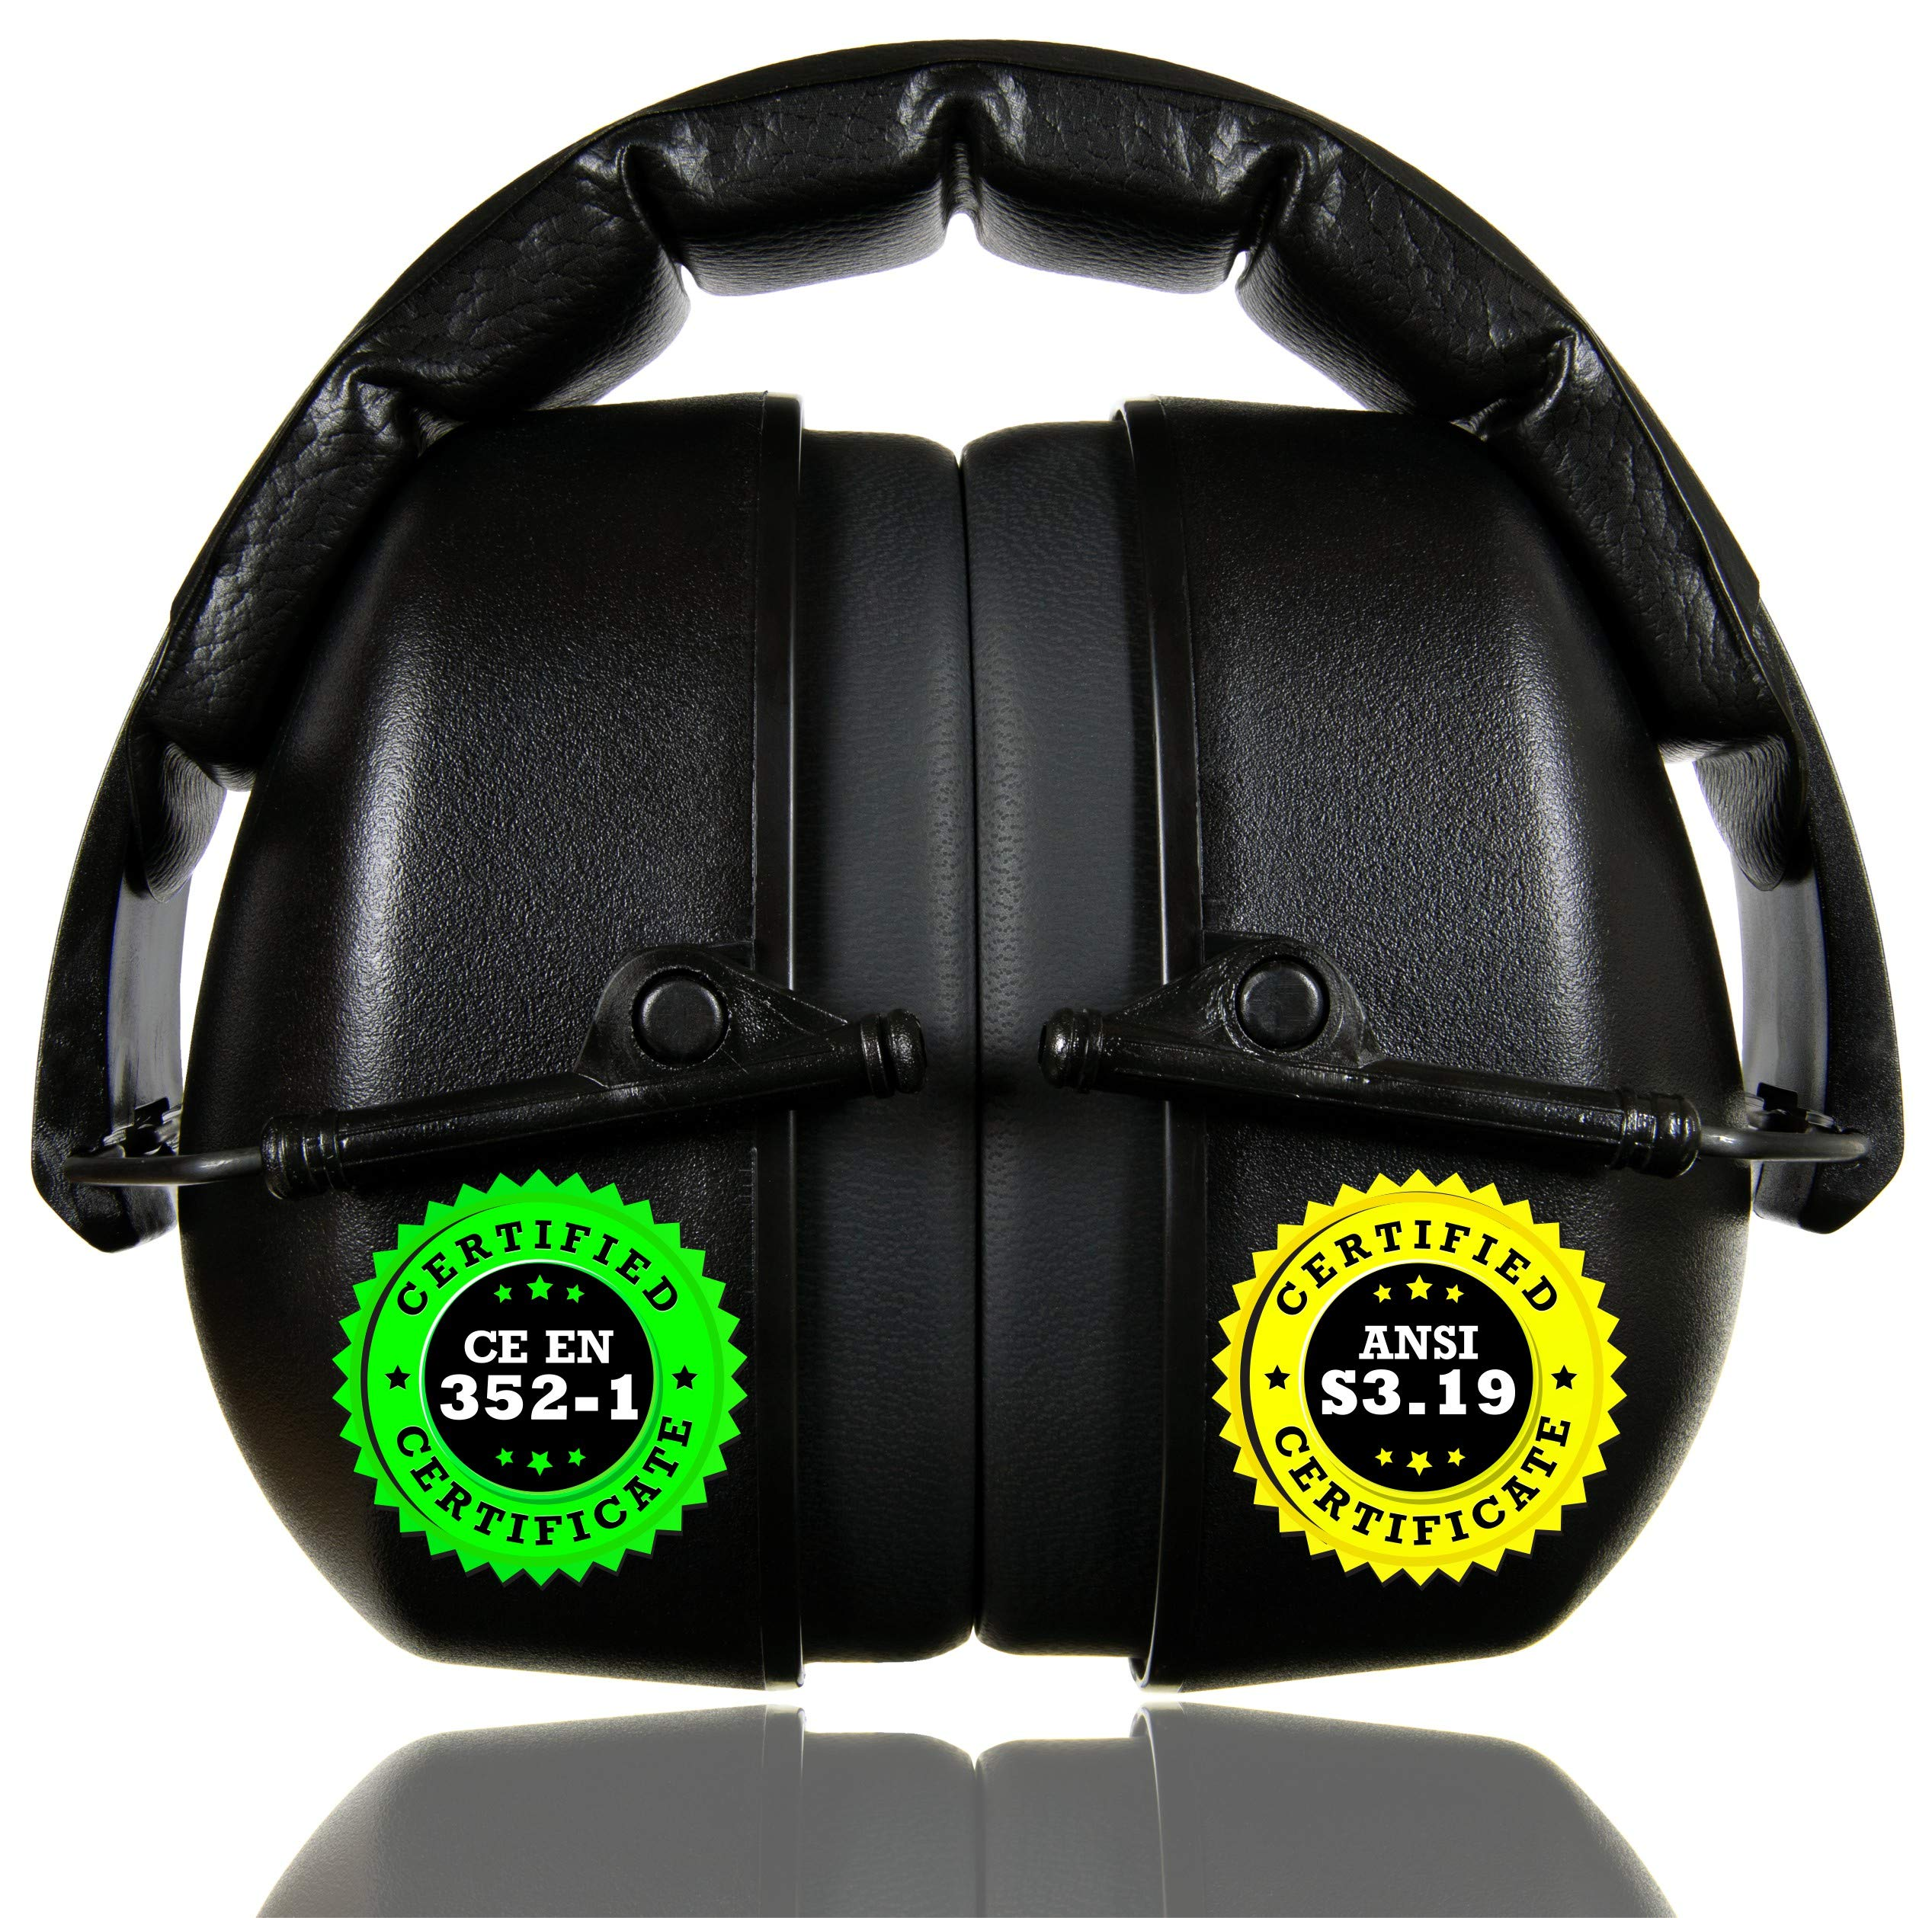 ClearArmor 141001 Shooters Hearing Protection Safety Ear Muffs Folding-Padded Head Band Ear Cups, Black by ClearArmor